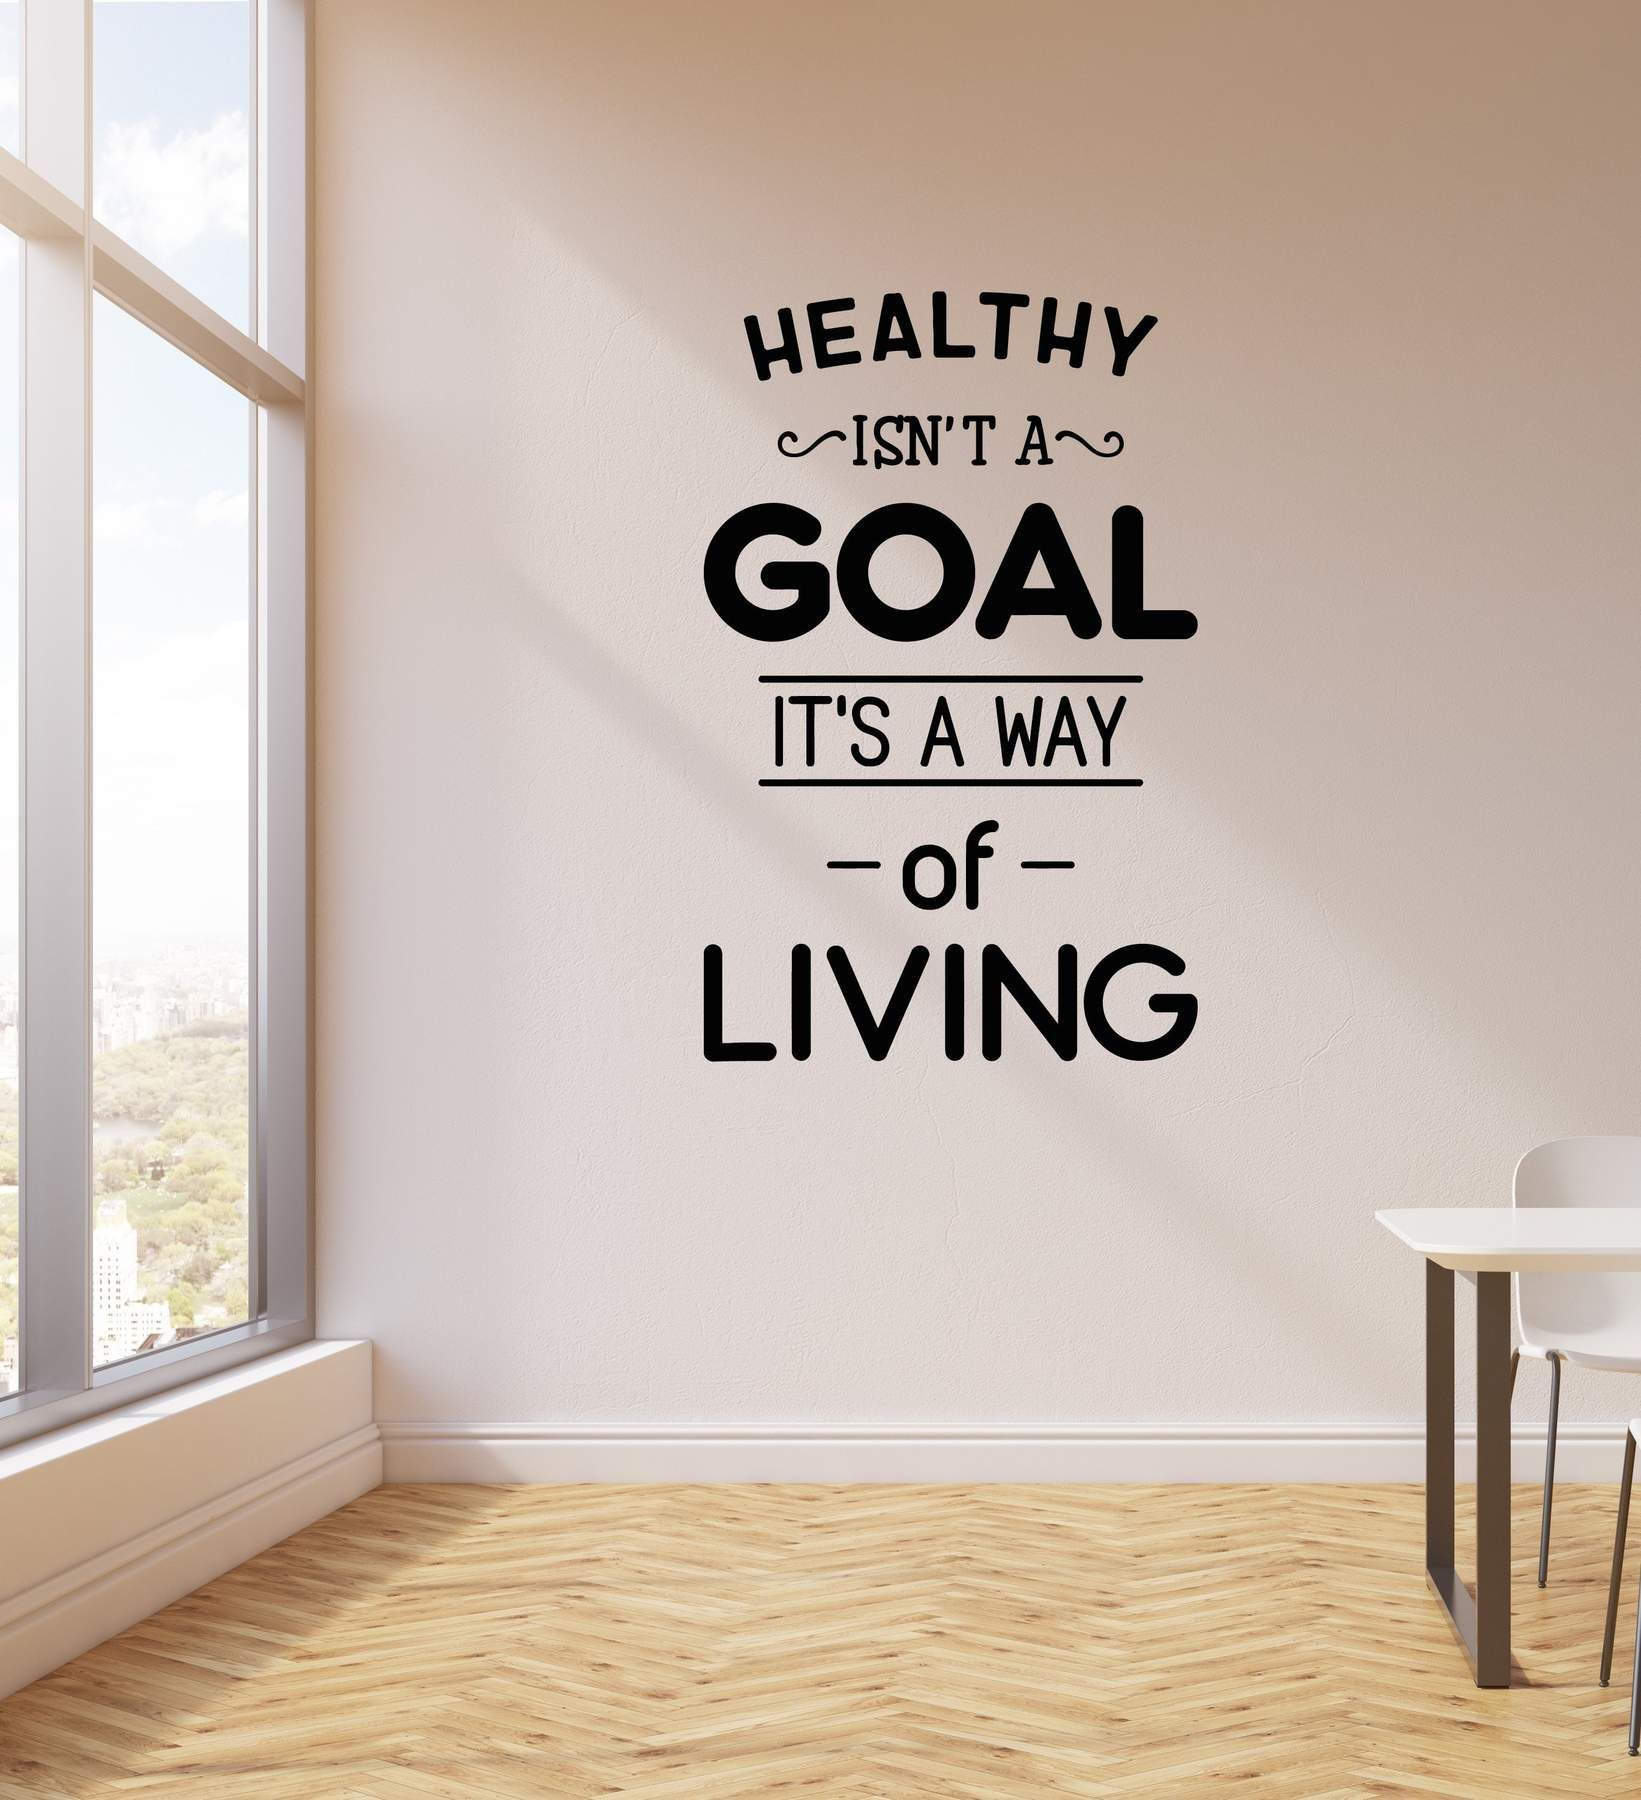 Vinyl Wall Decal Healthy Lifestyle Living Quote Medical Office